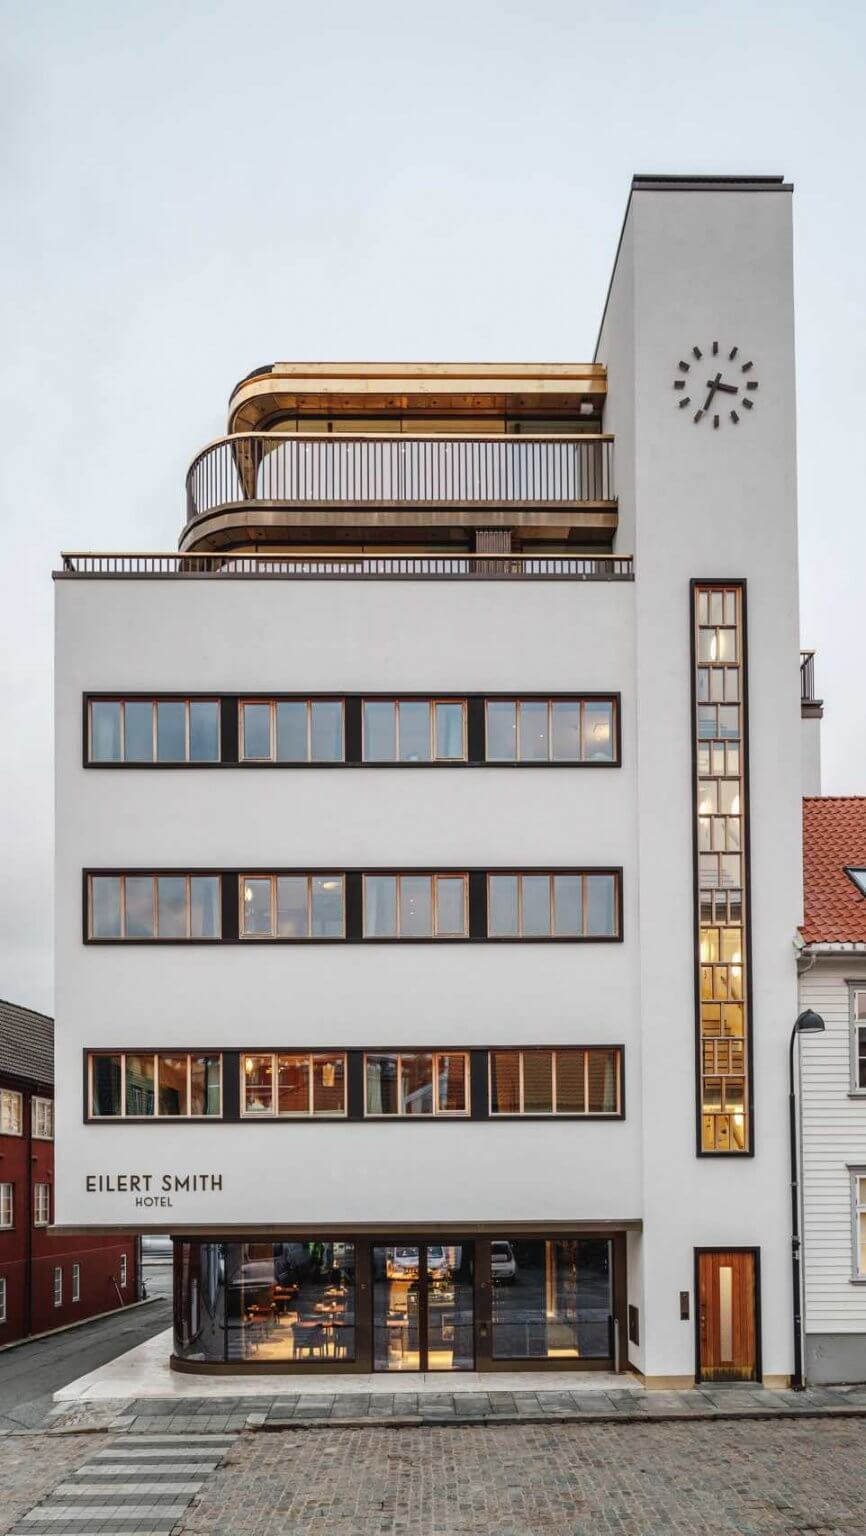 Eilert Smith Hotel functionalist building exterior